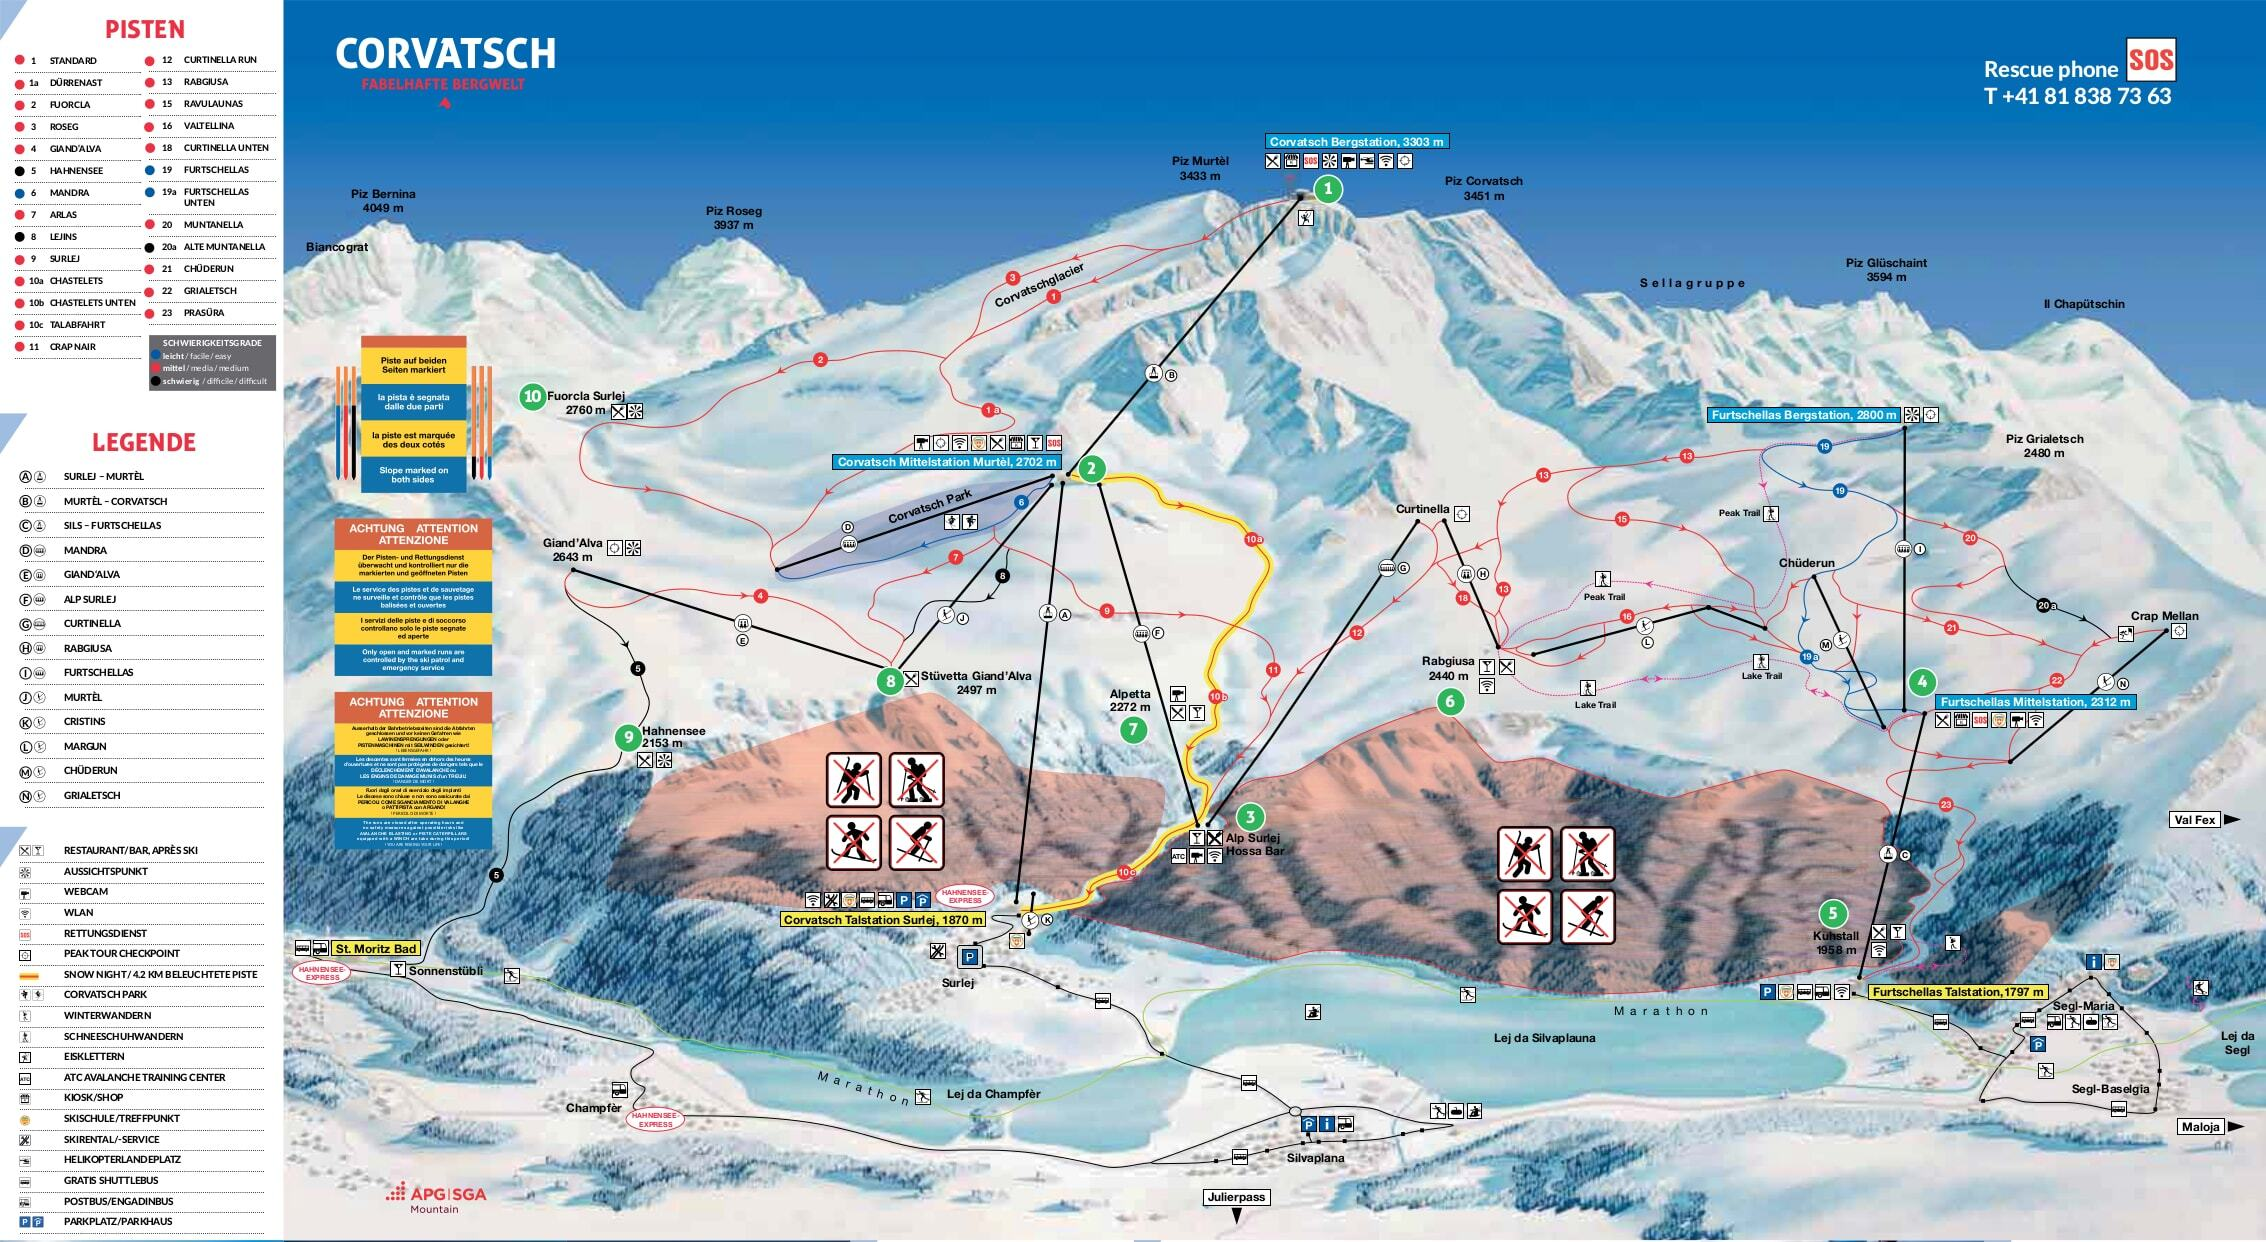 Corvatsch-Furtschellas Piste / Trail Map